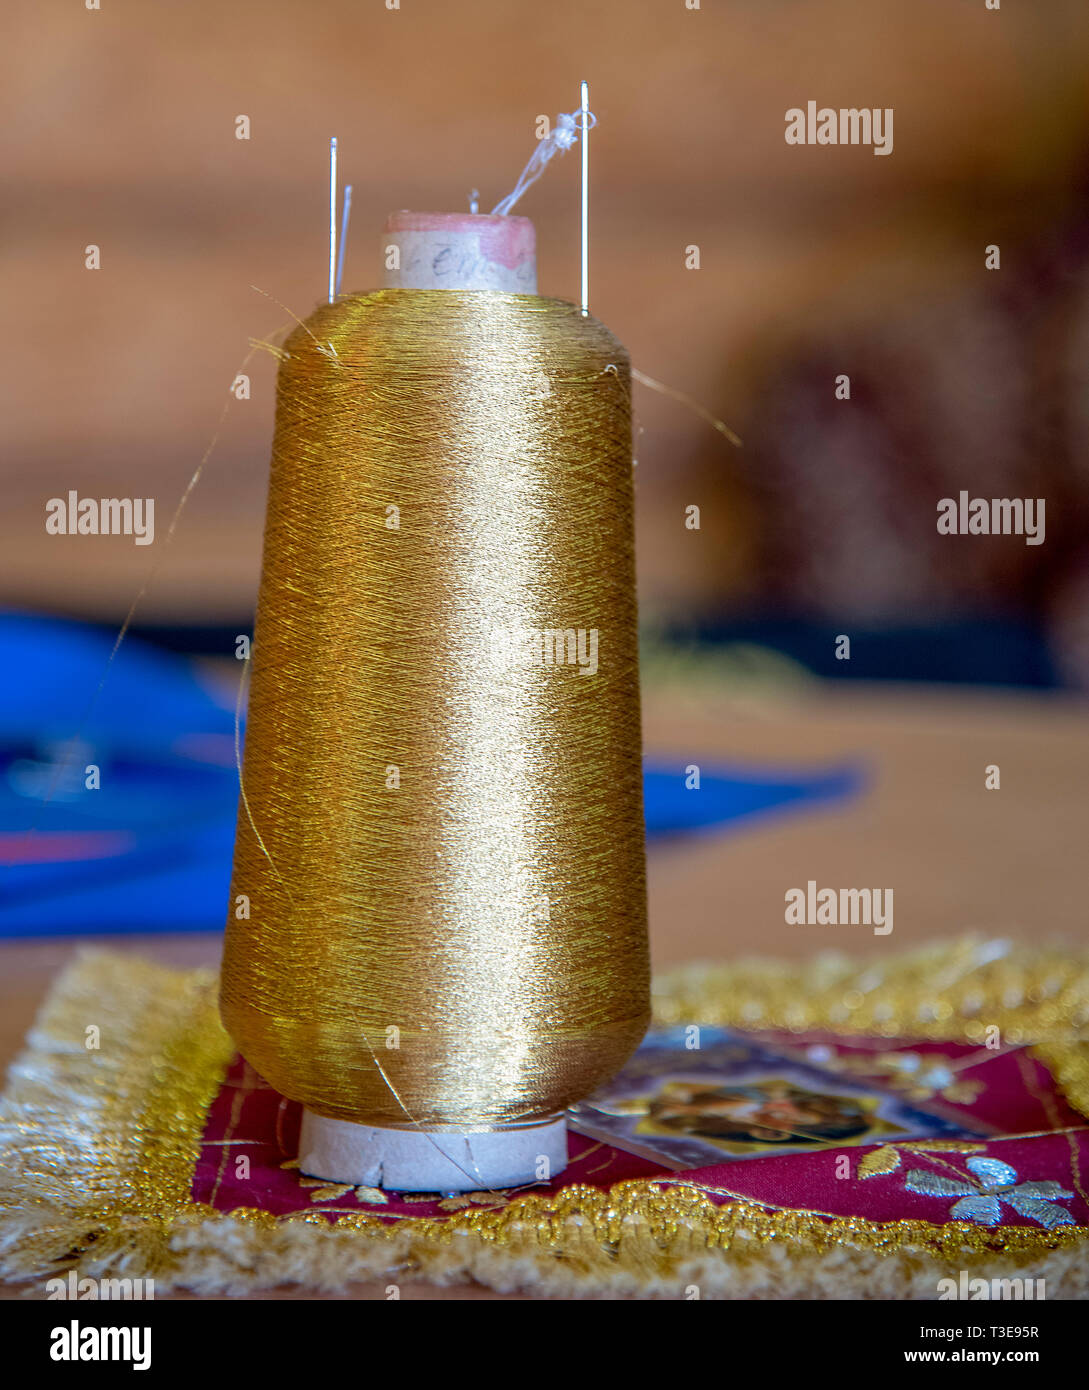 A coil of gold thread stands on the table. The coil is inserted the needle. - Stock Image